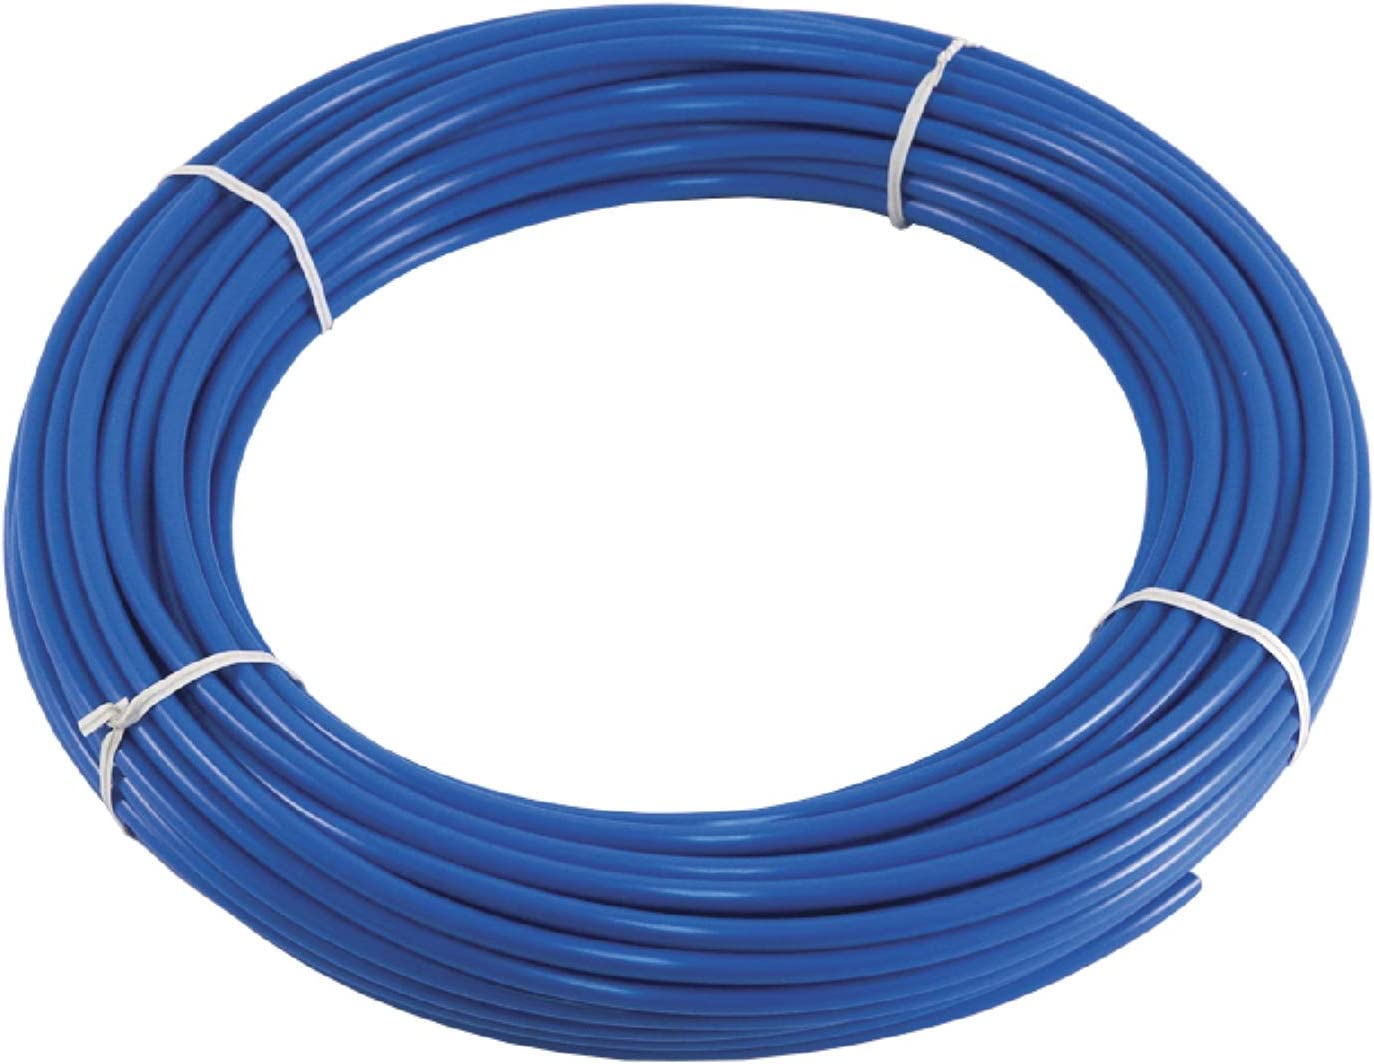 Polyethylene PE Tubing 100ft – for Water Filtration, Reverse Osmosis RO, Purifier, Aquarium, ATO, Refrigerator, Ice Maker and More – Blue Food Grade BPA Free Pipe – Quick Connect and Push Fitting Co